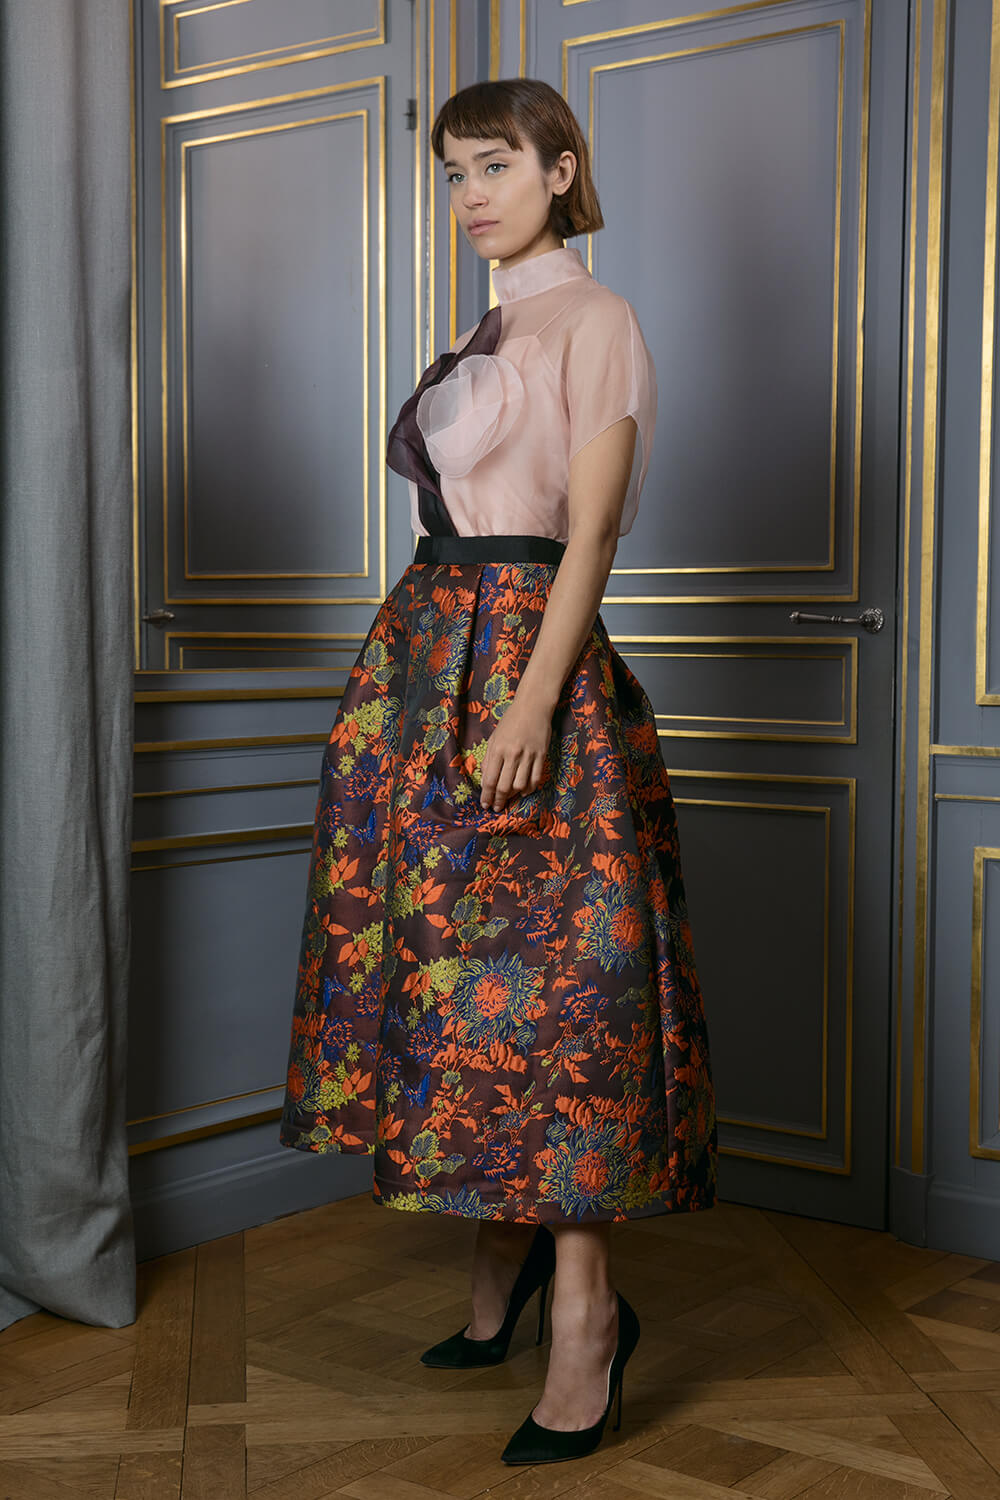 Metallic floral printed full midi skirt